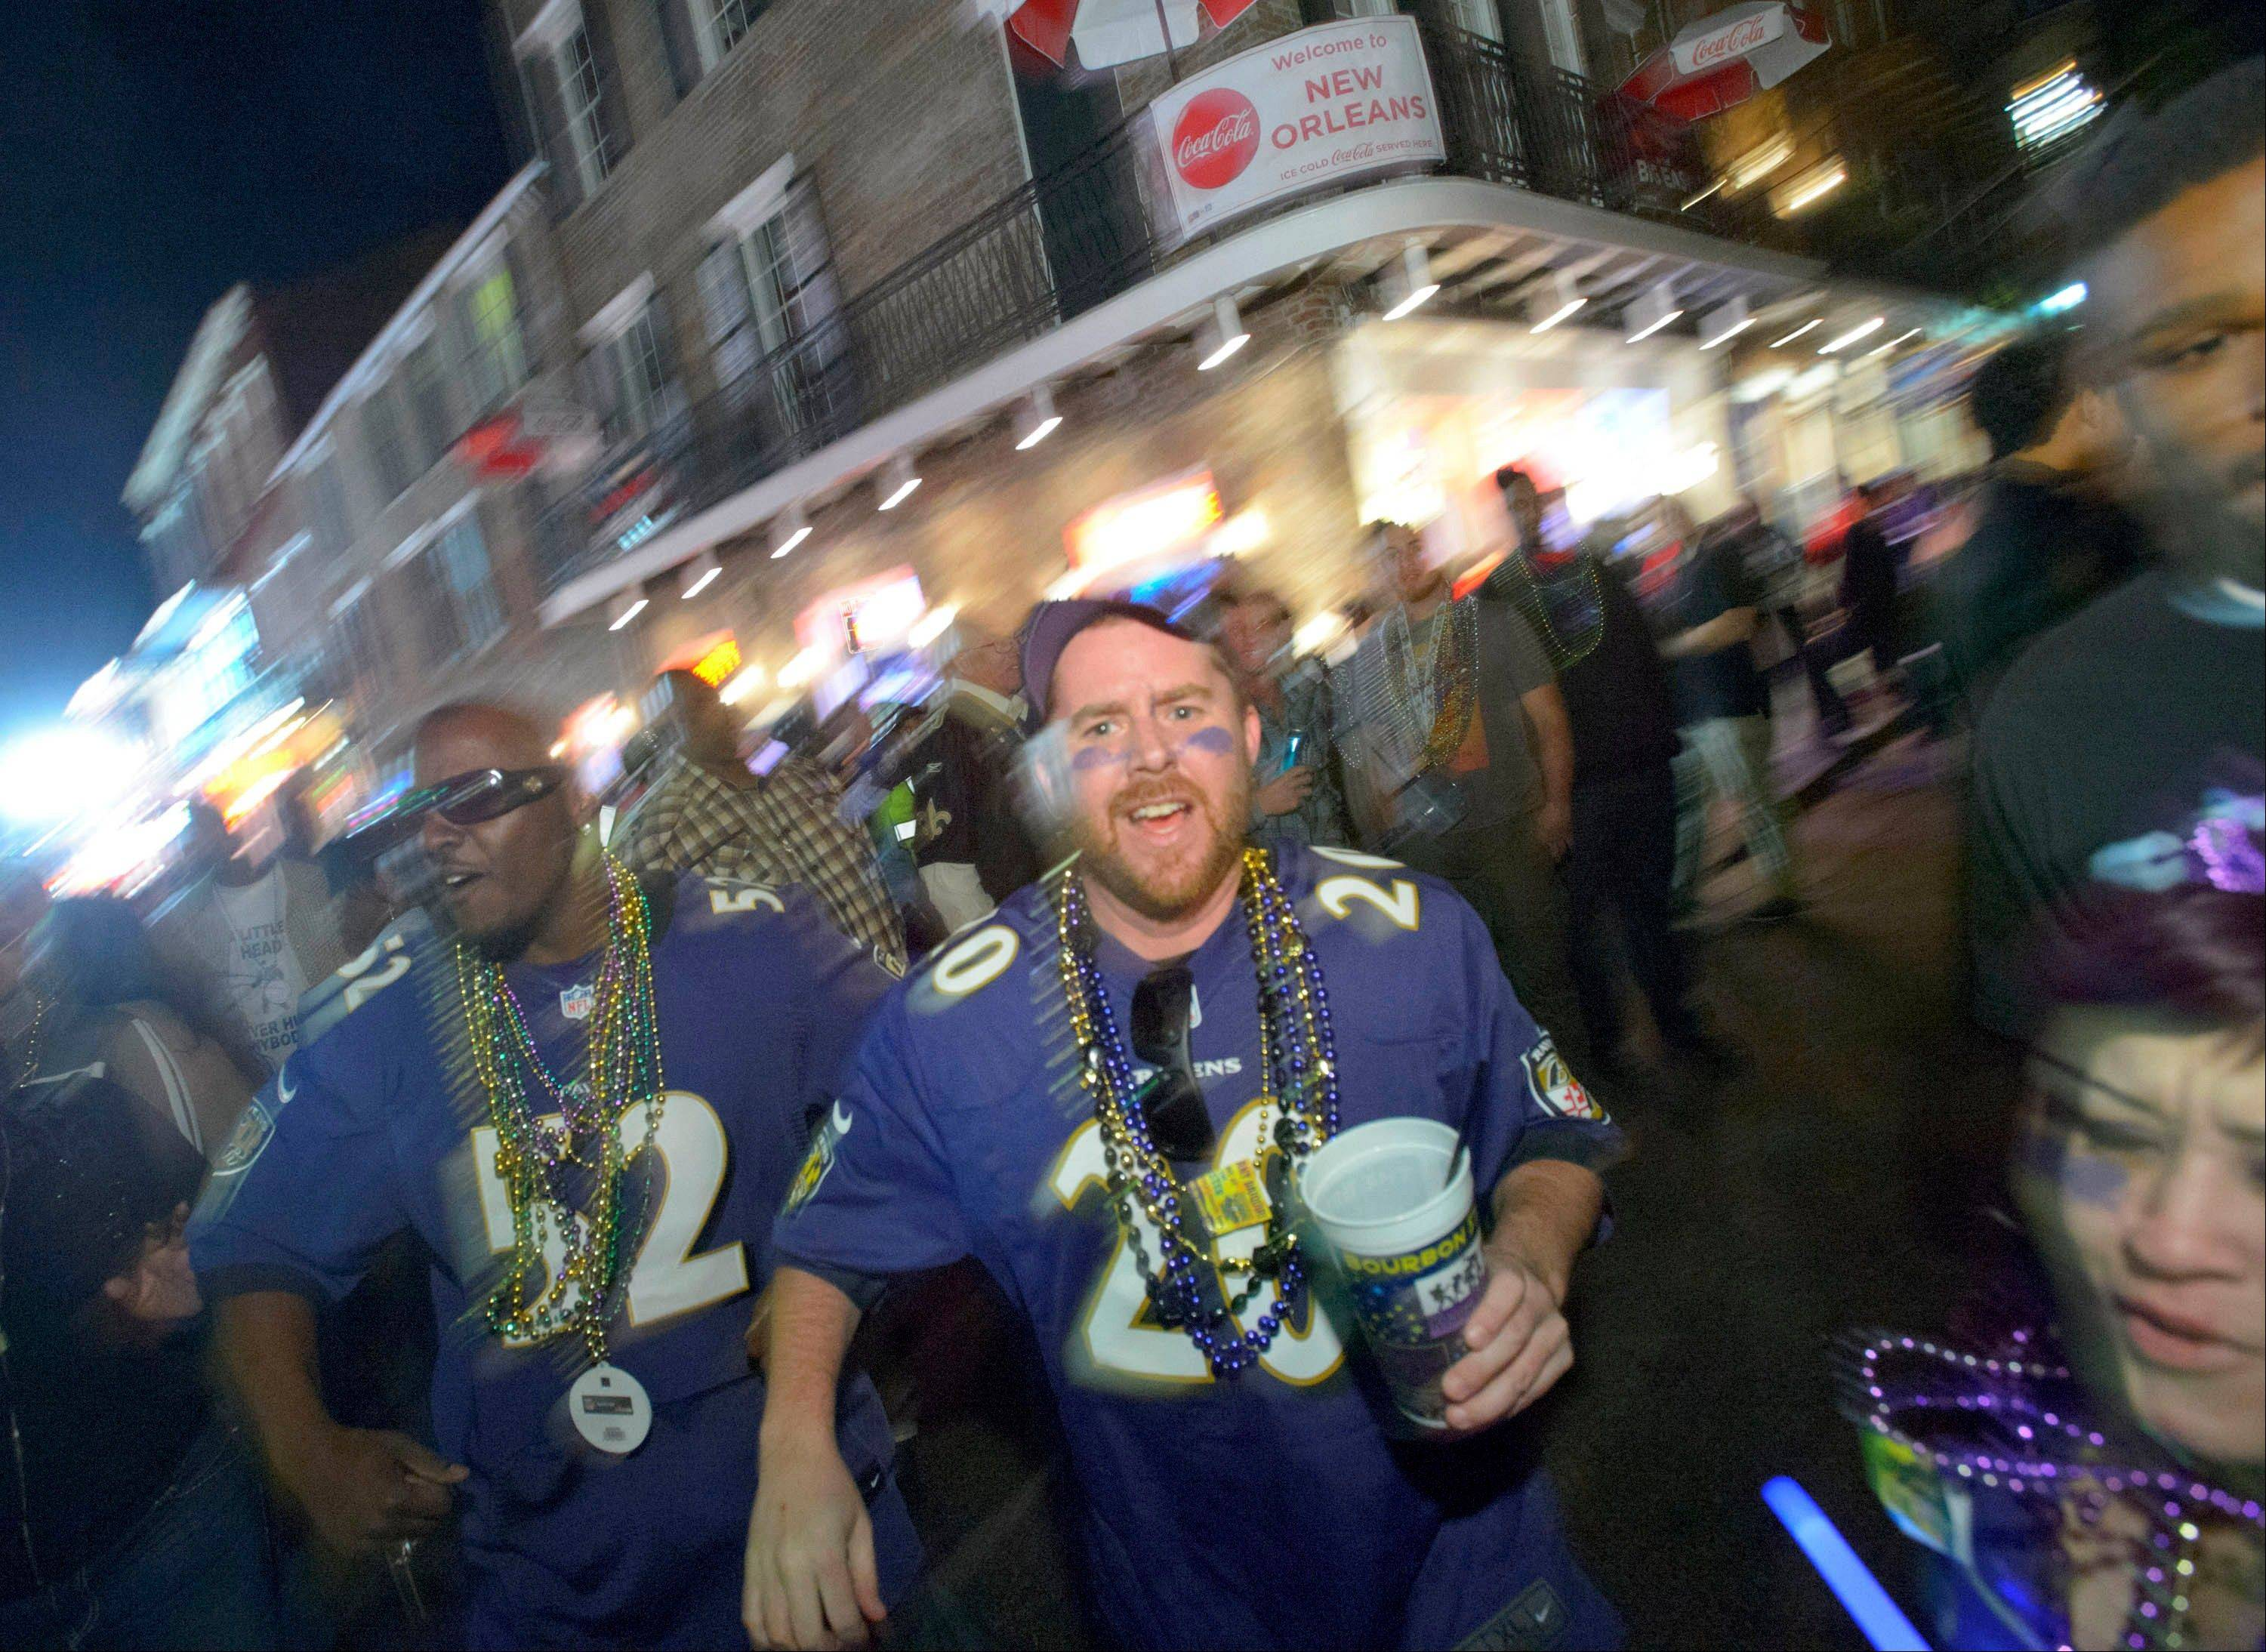 Baltimore Ravens fans celebrate the team�s Super Bowl victory Sunday night on Bourbon Street in New Orleans.